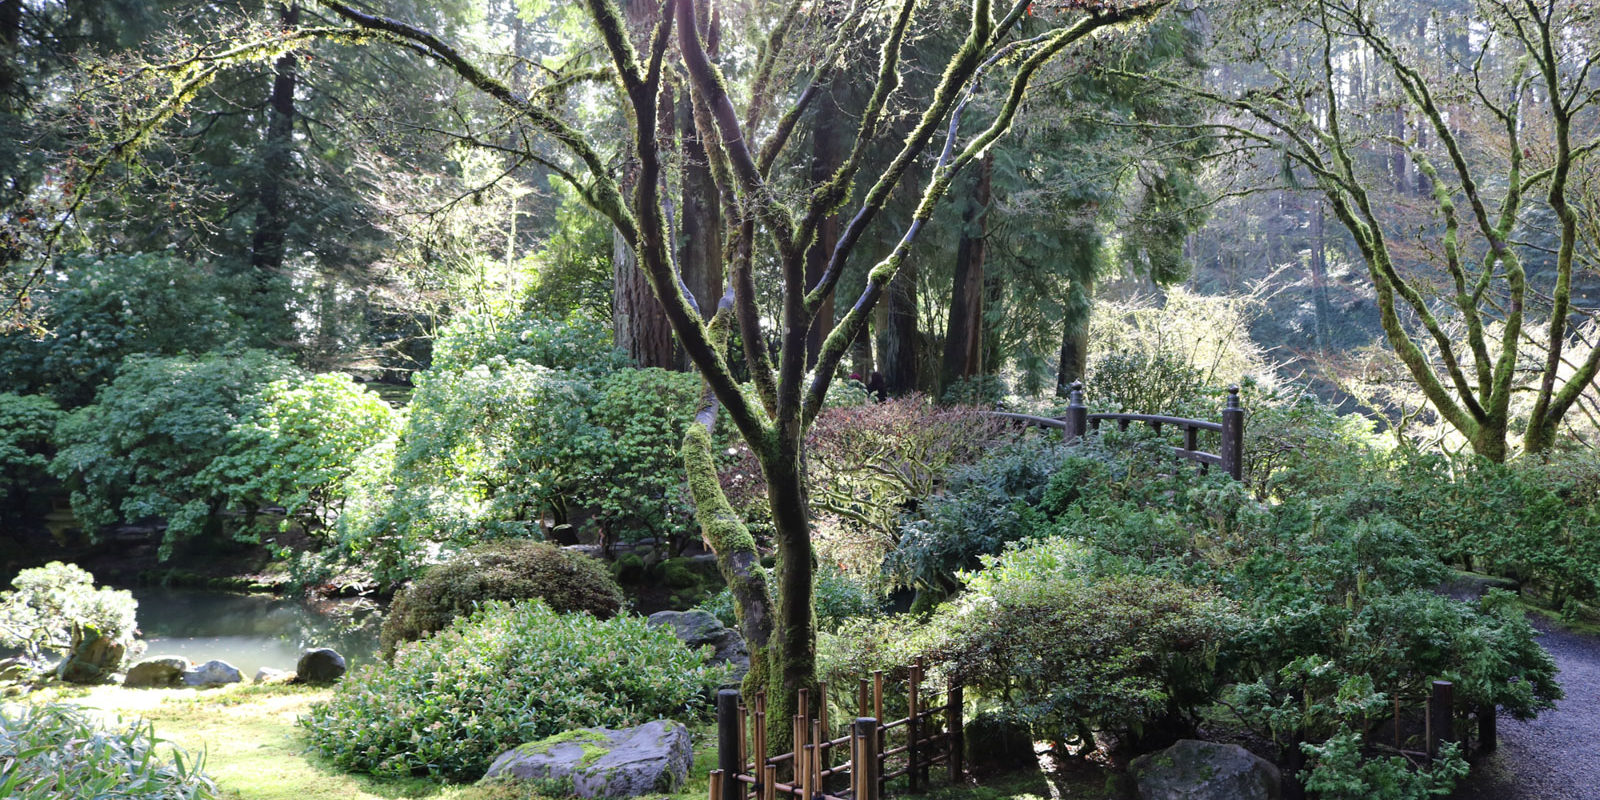 Early spring in the garden portland japanese garden for Portland japanese garden admission